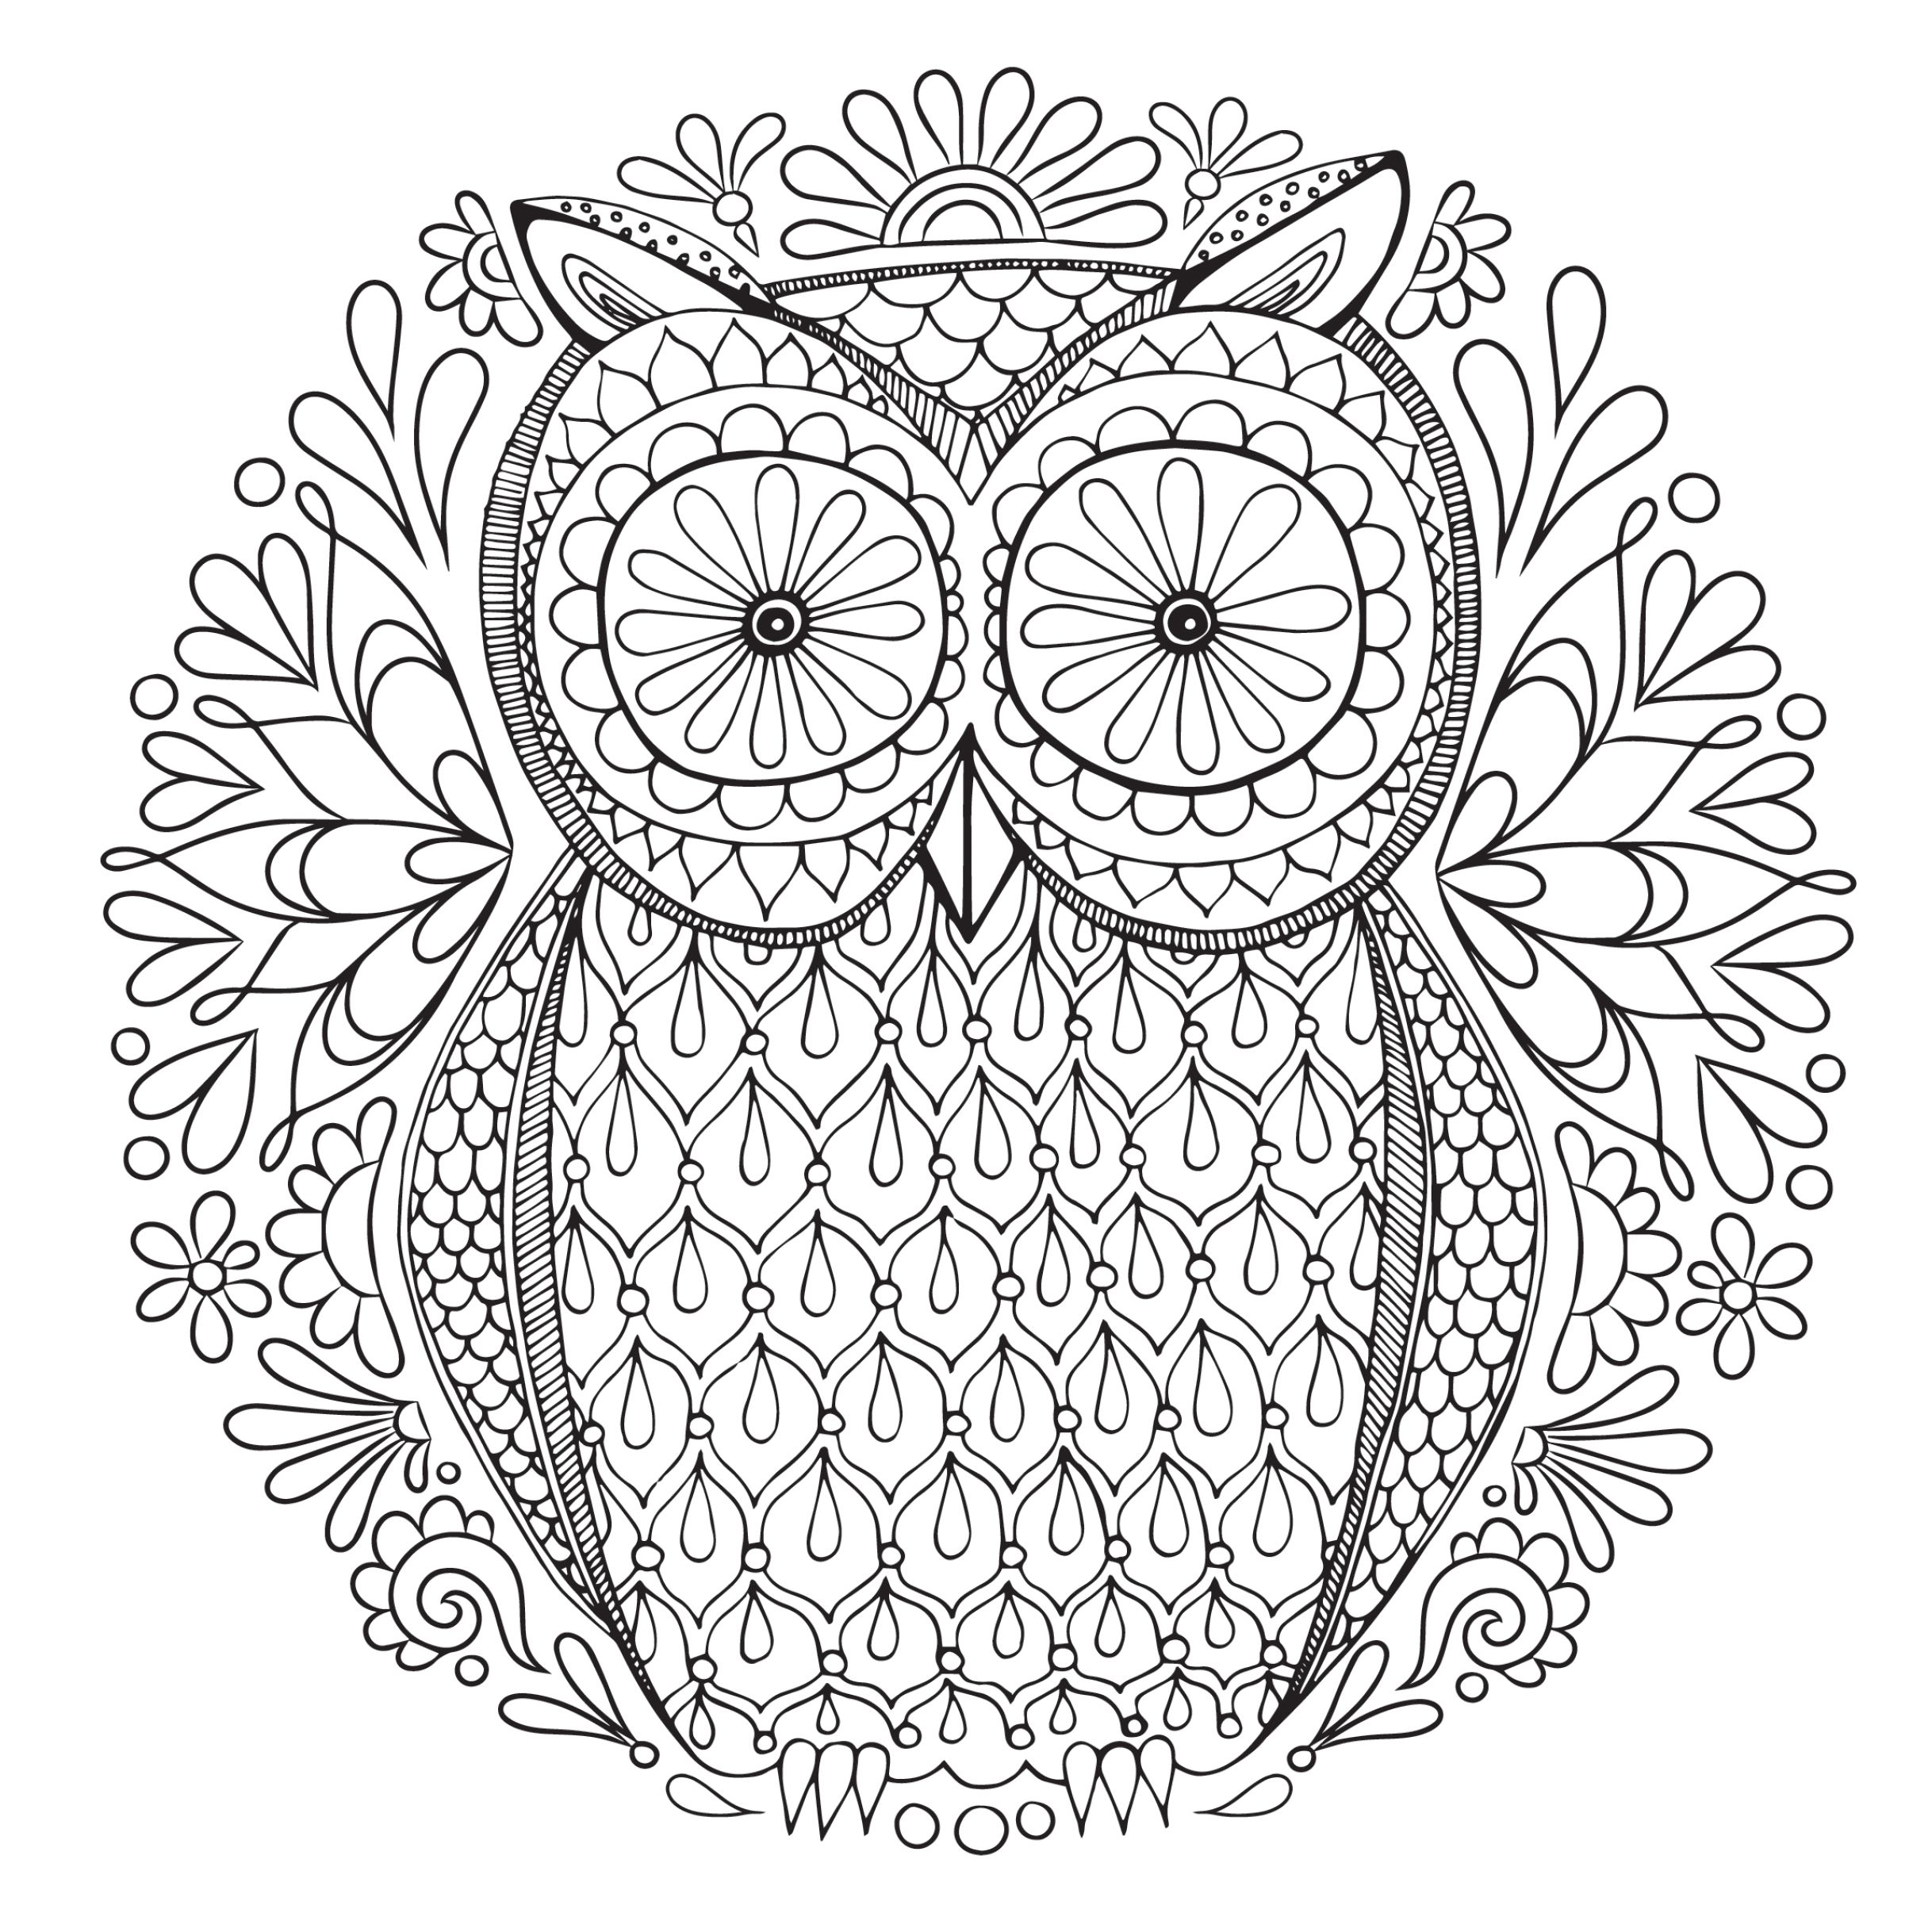 An owl adult coloring page.